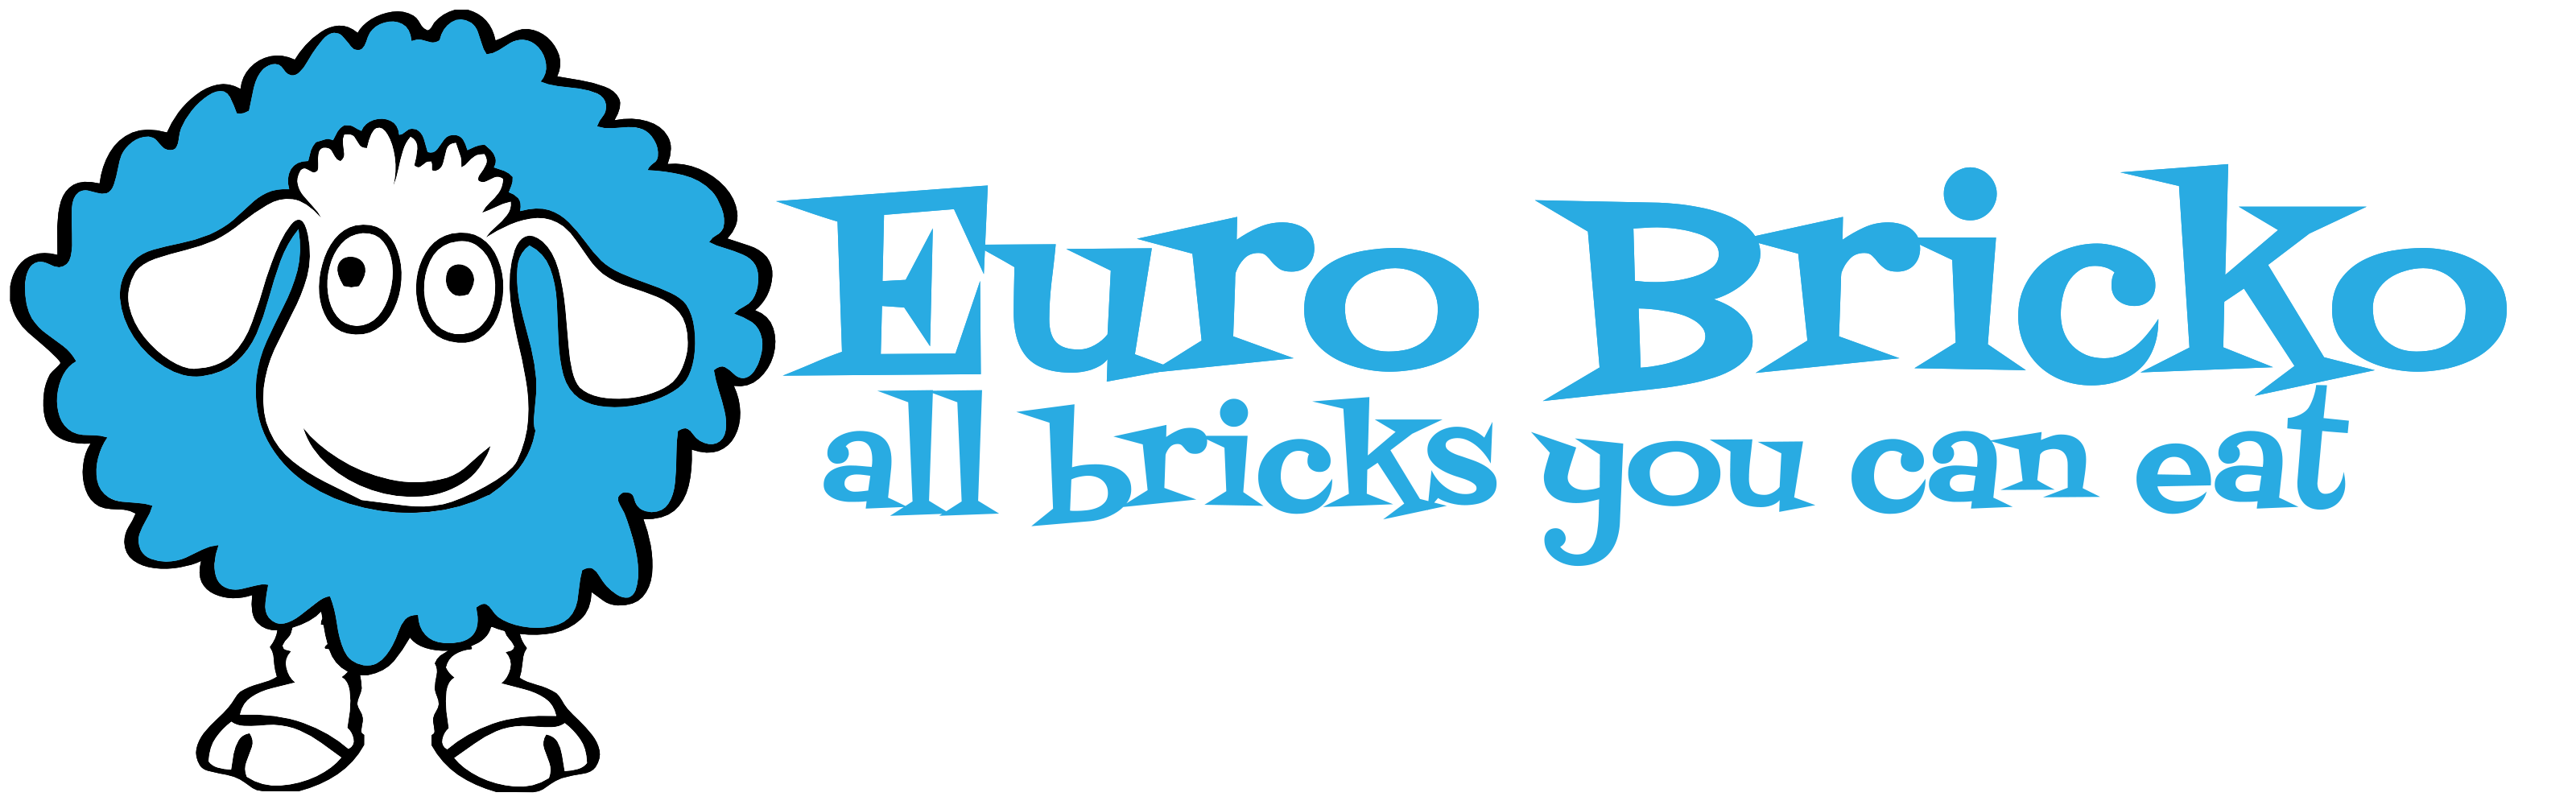 Euro Bricko - all bricks you can eat